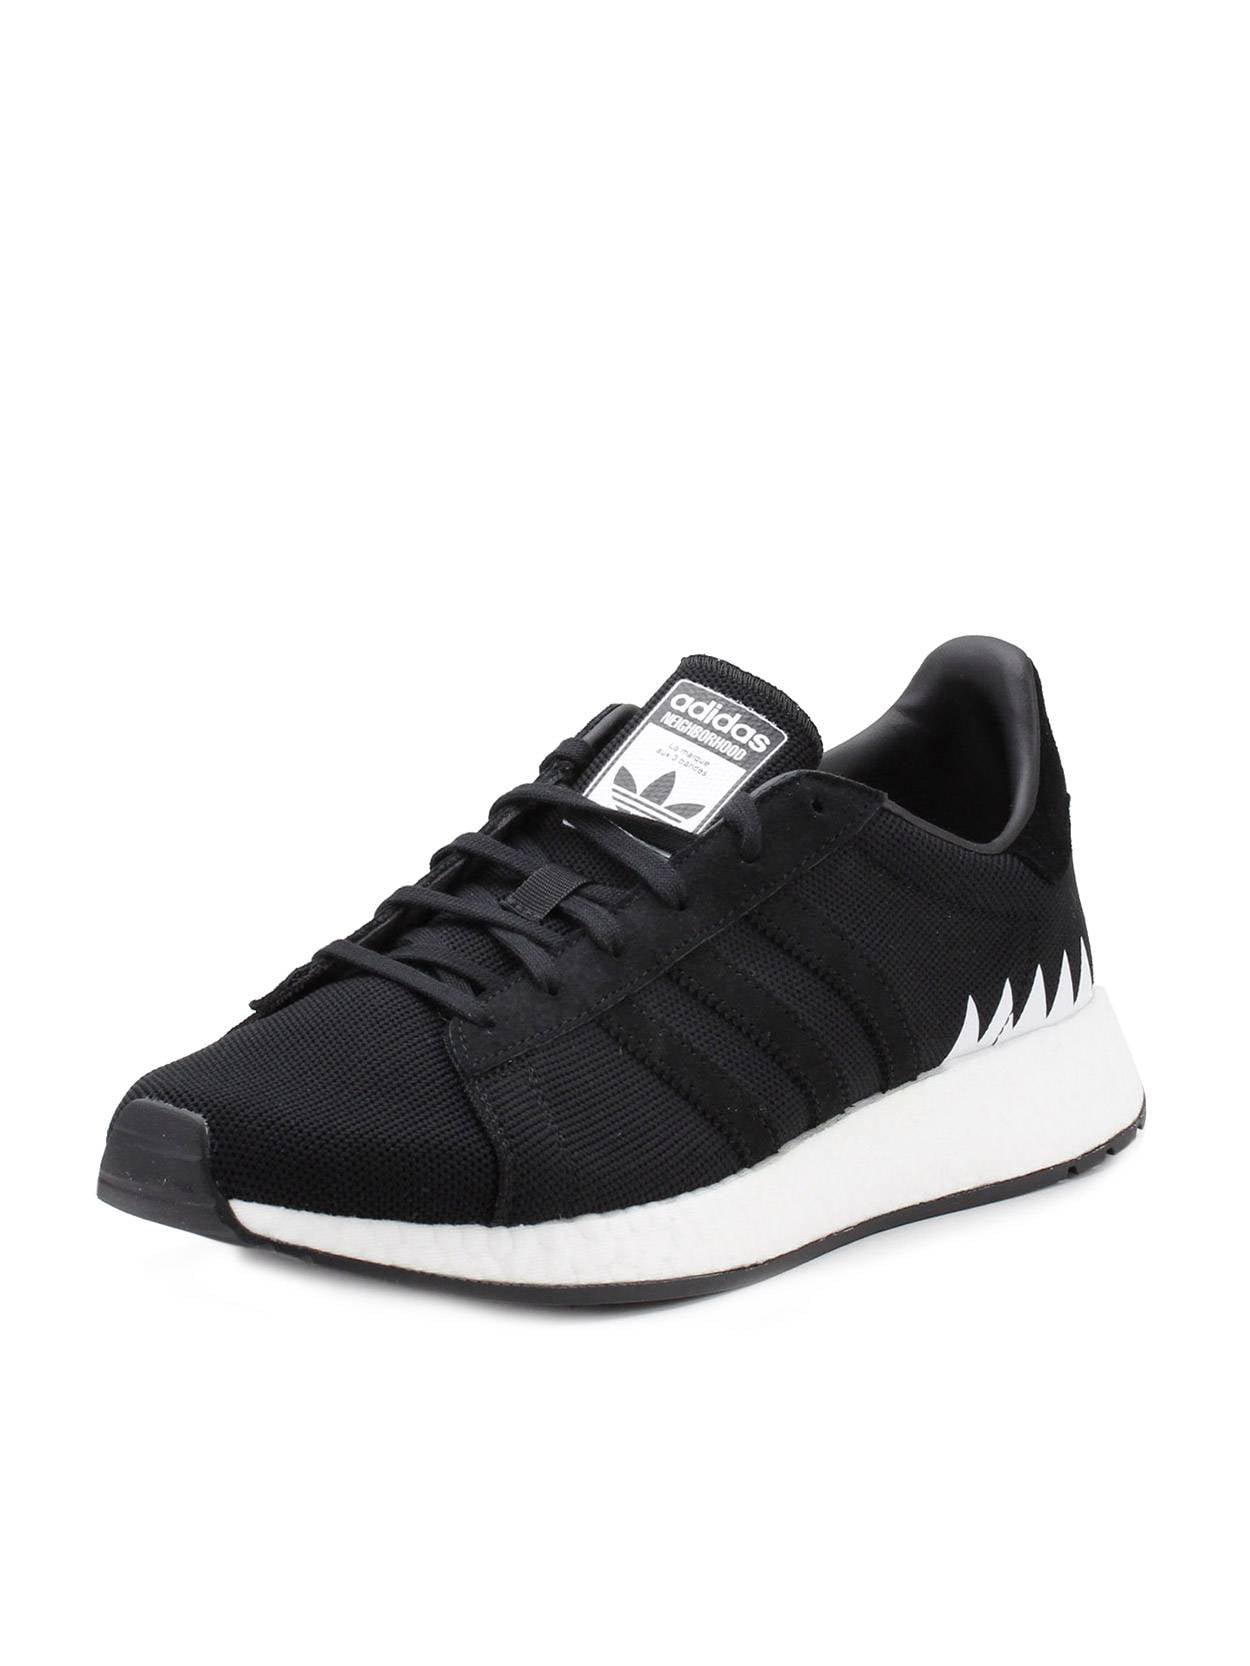 Adidas Mens Chop Shop NBHD NEIGHBORHOOD Black DA8839 by Adidas